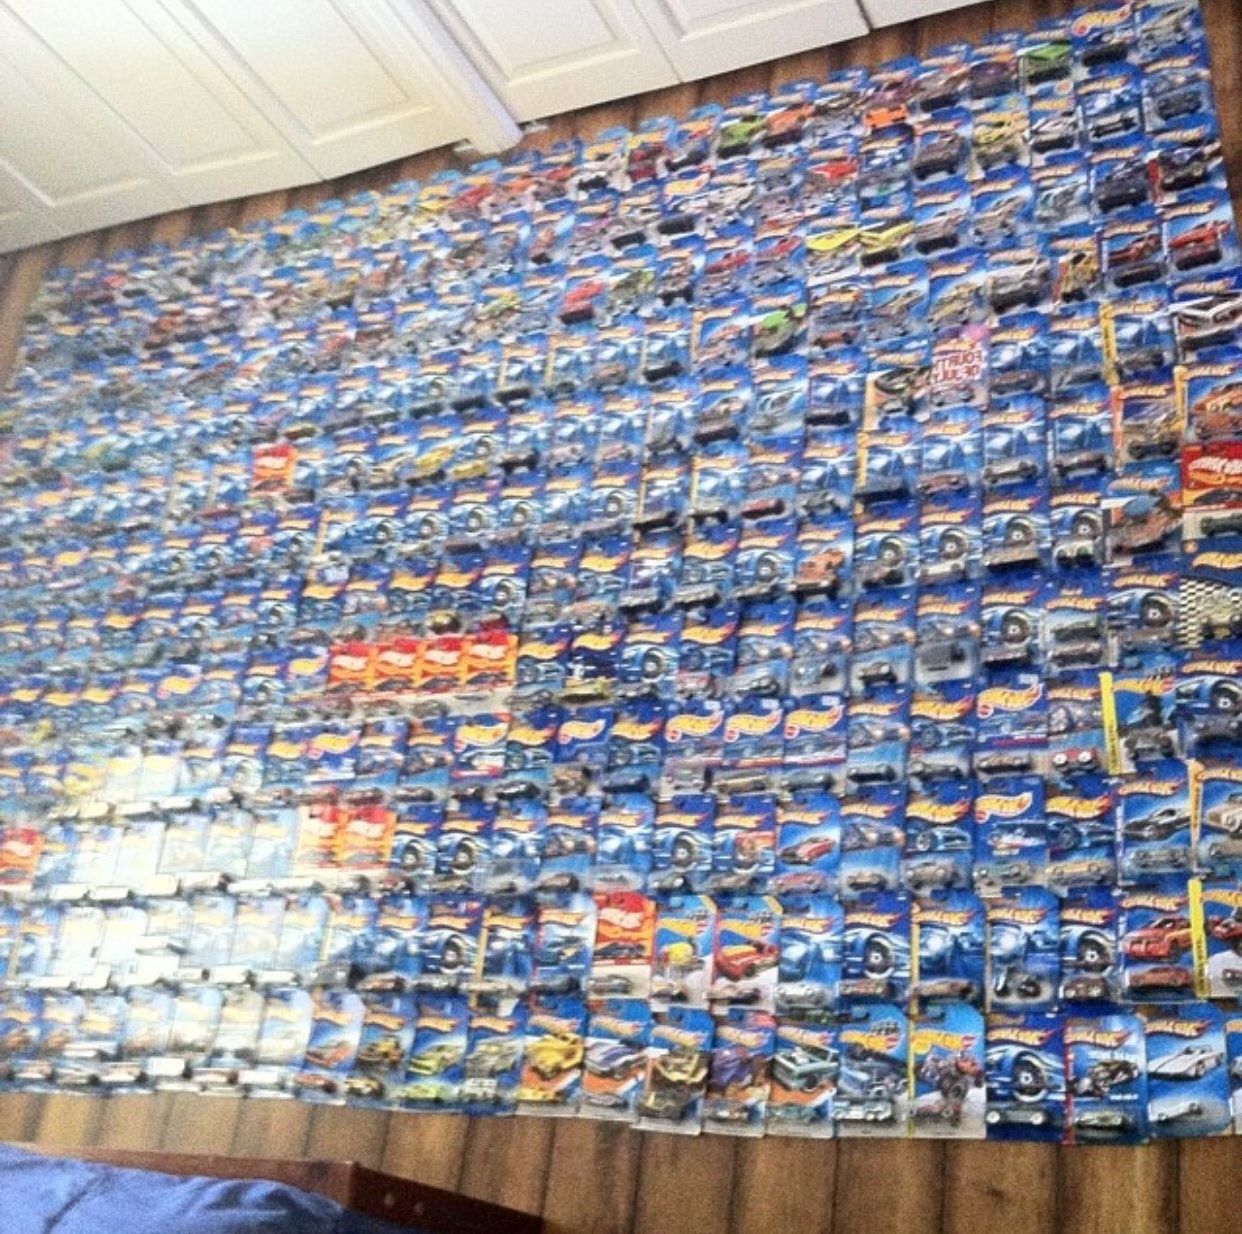 [%My Diecast Collection]My November 2016 Collection Wrap Up Inside Widely Used Hot Wheels Wall Art|Hot Wheels Wall Art Pertaining To Widely Used My Diecast Collection]My November 2016 Collection Wrap Up|Well Liked Hot Wheels Wall Art Inside My Diecast Collection]My November 2016 Collection Wrap Up|Most Current My Diecast Collection]My November 2016 Collection Wrap Up For Hot Wheels Wall Art%] (View 1 of 15)